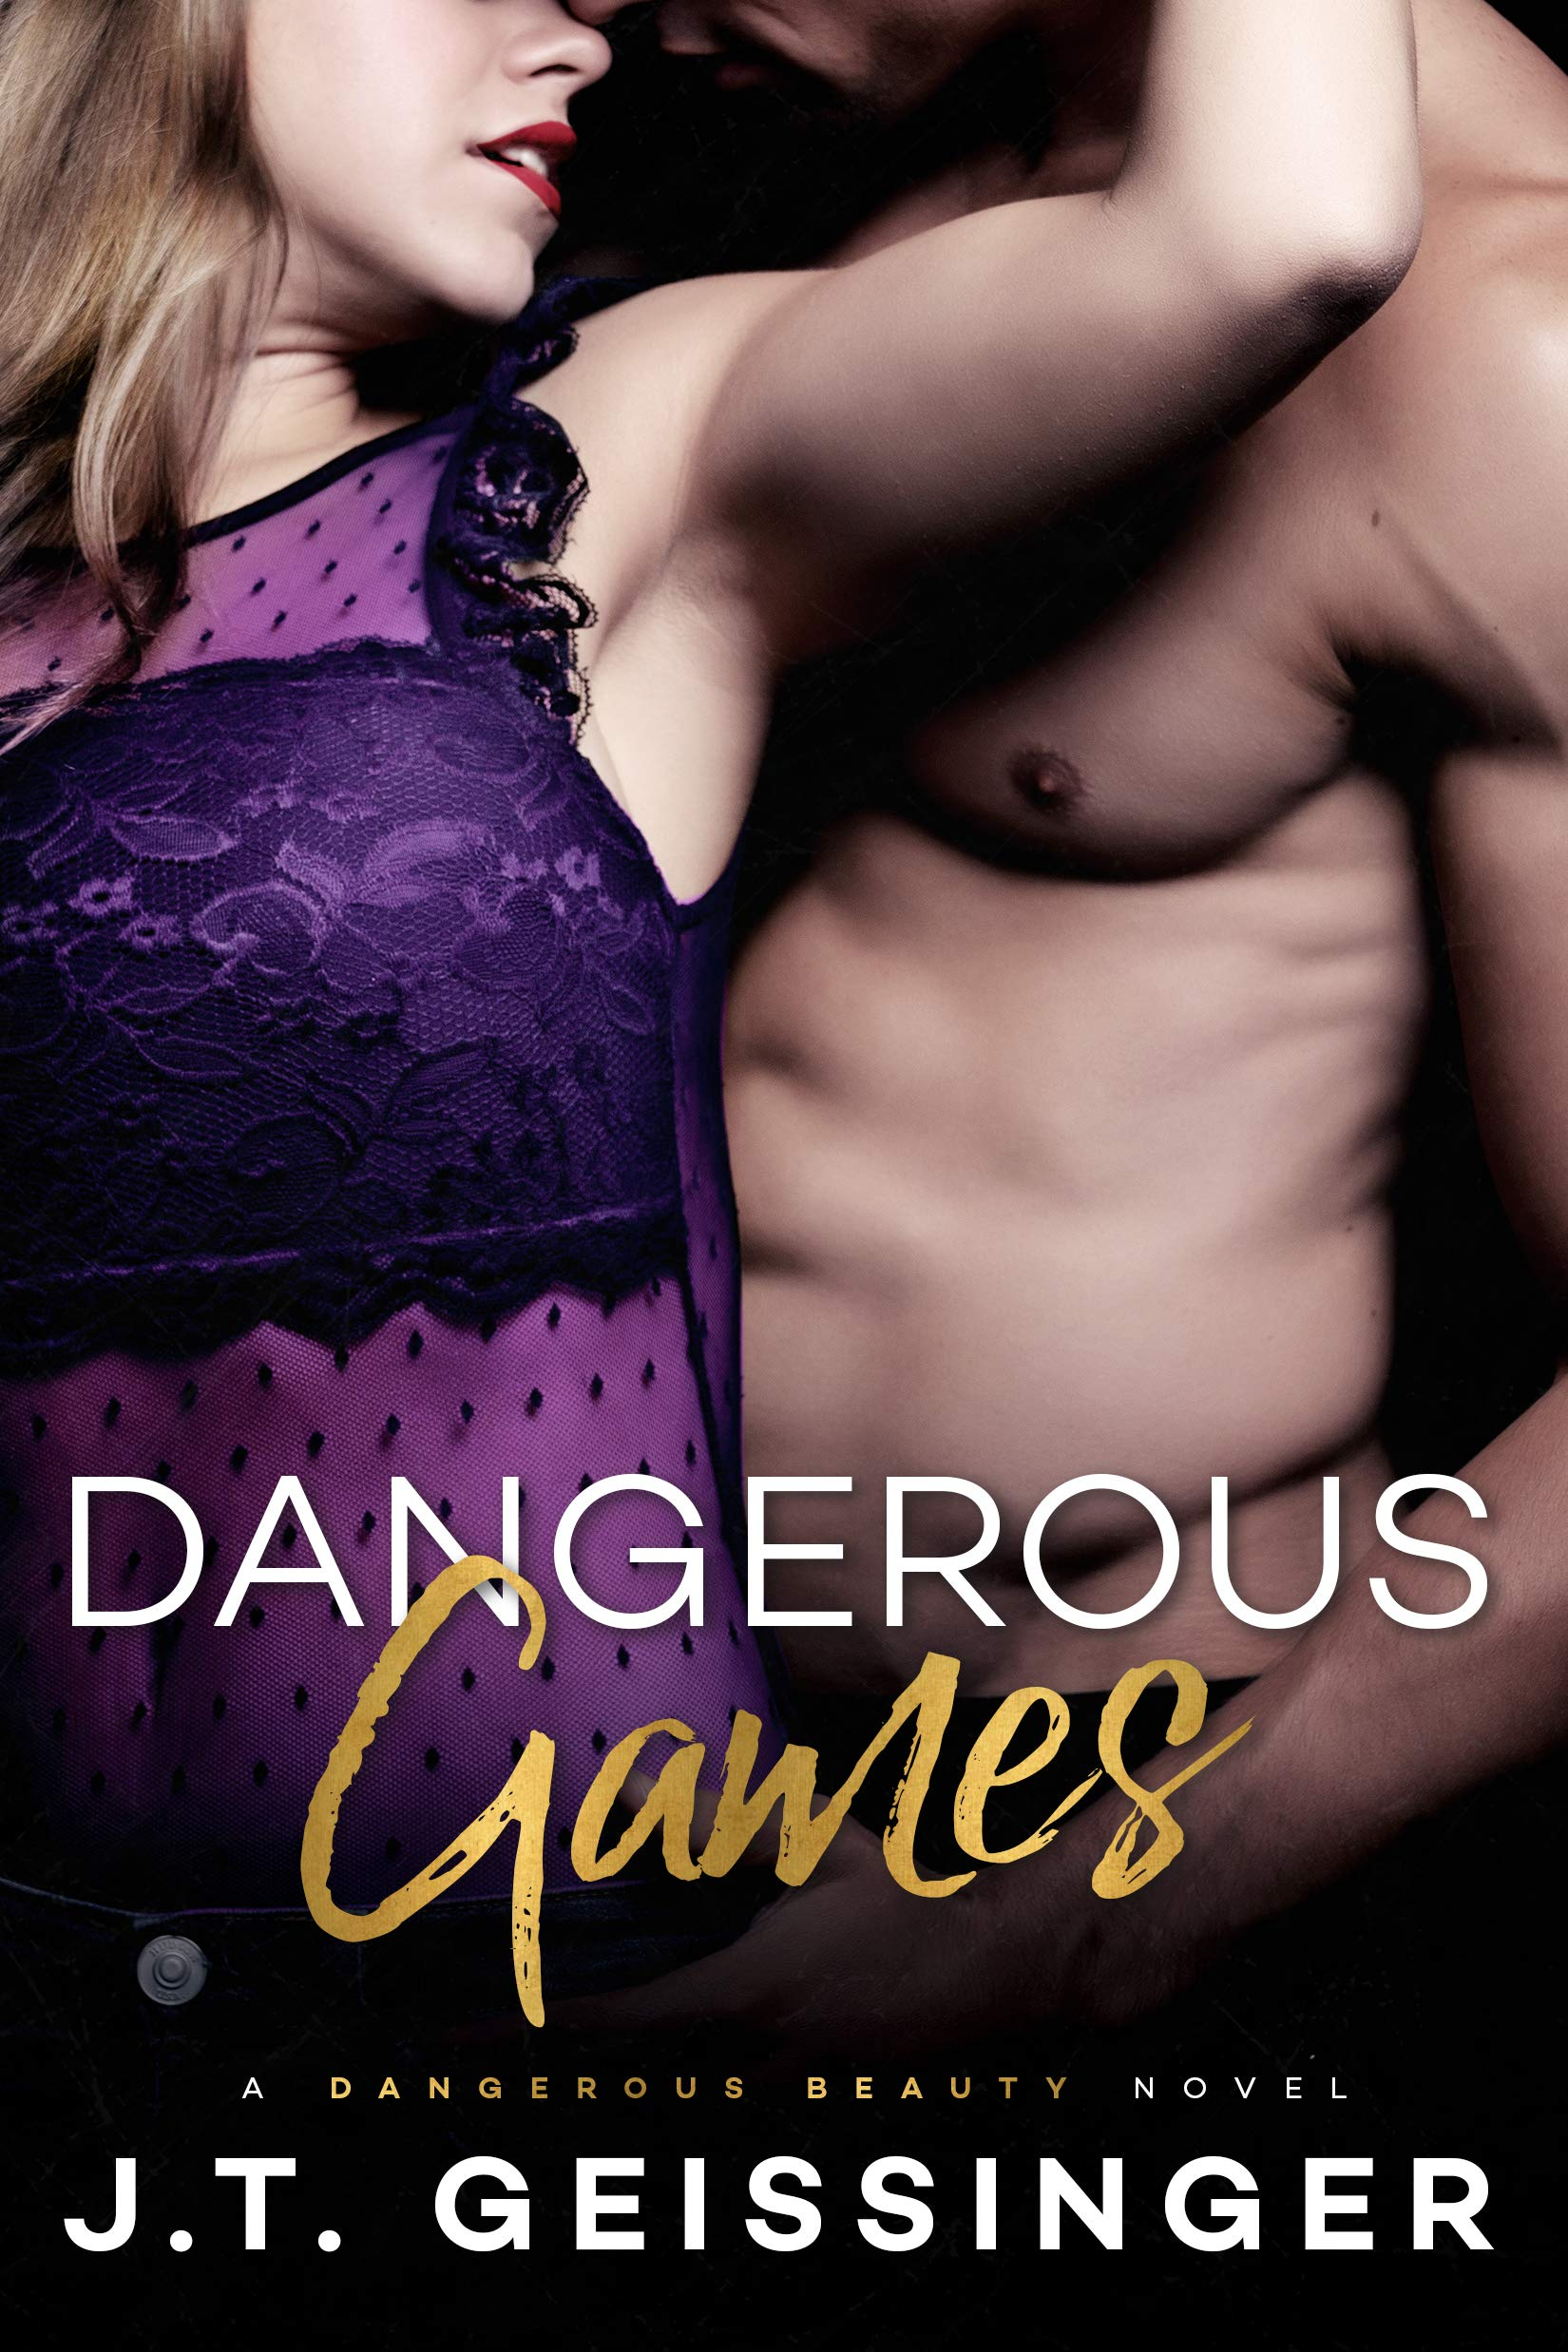 J. T. Geissinger - Dangerous Beauty 3 - Dangerous Games